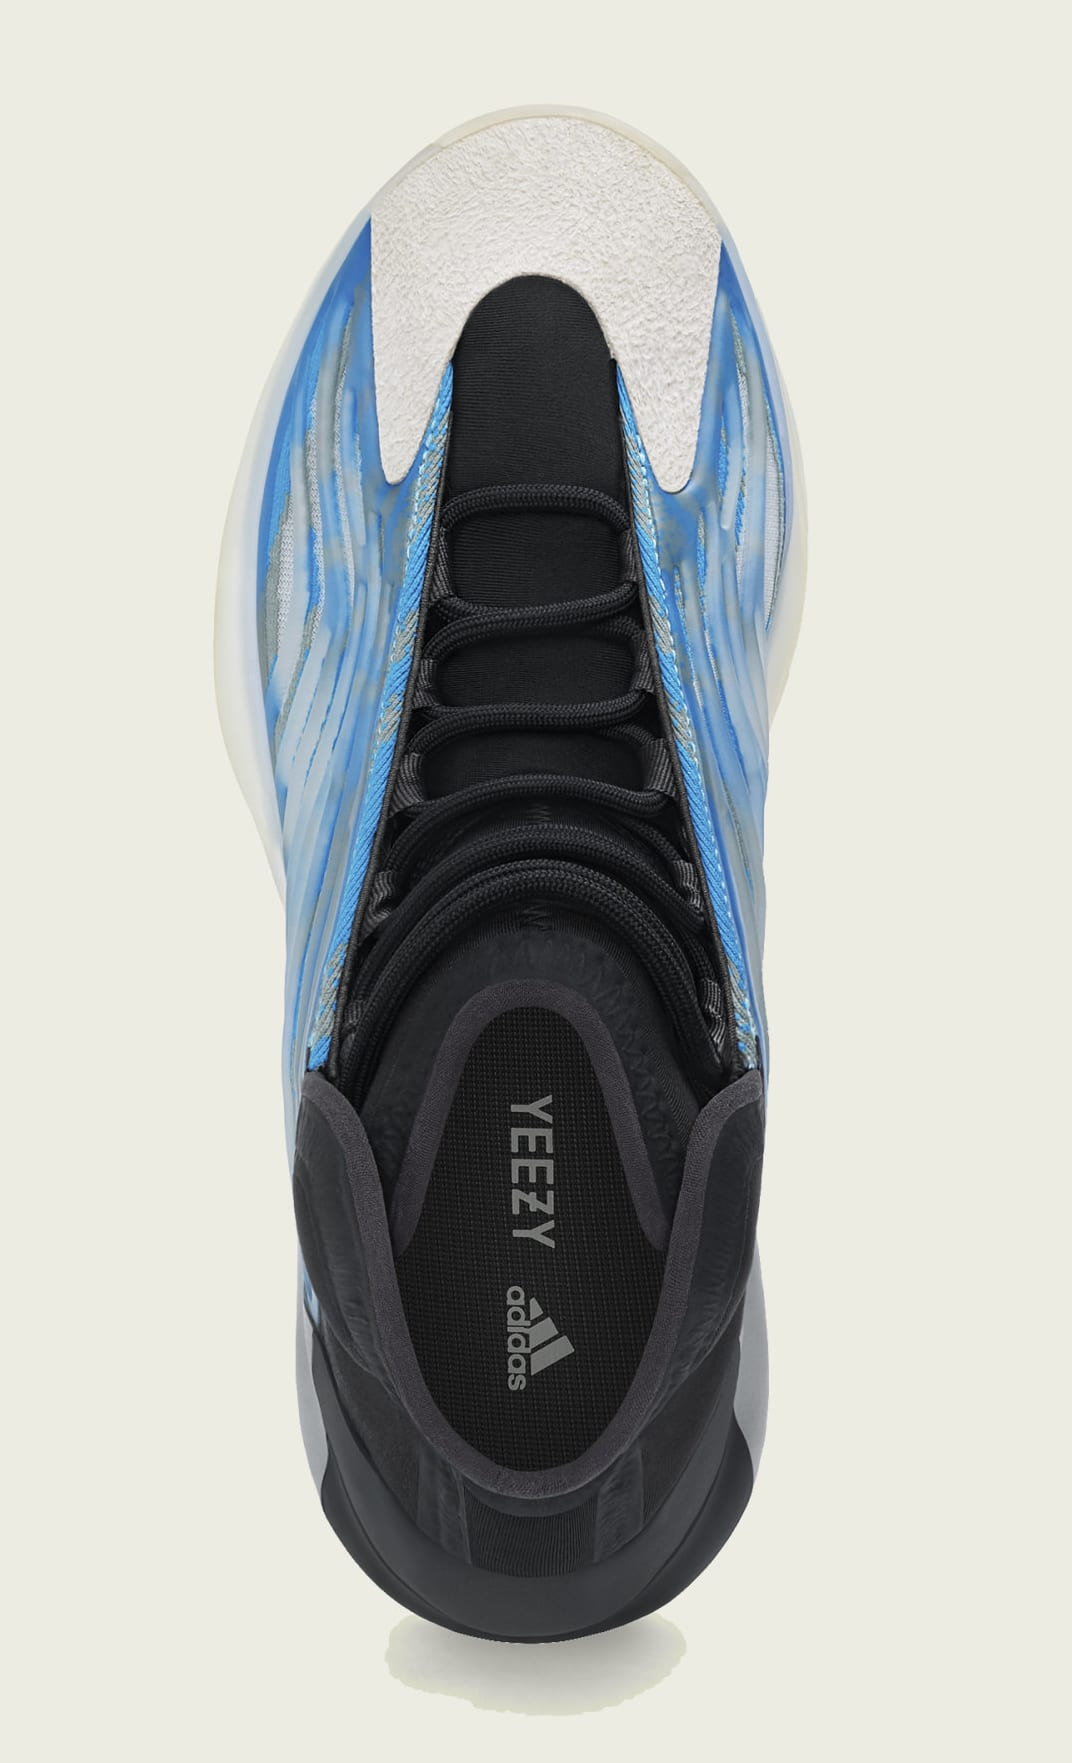 Adidas Yeezy Quantum Adults 'Frozen Blue' GZ8872 Top